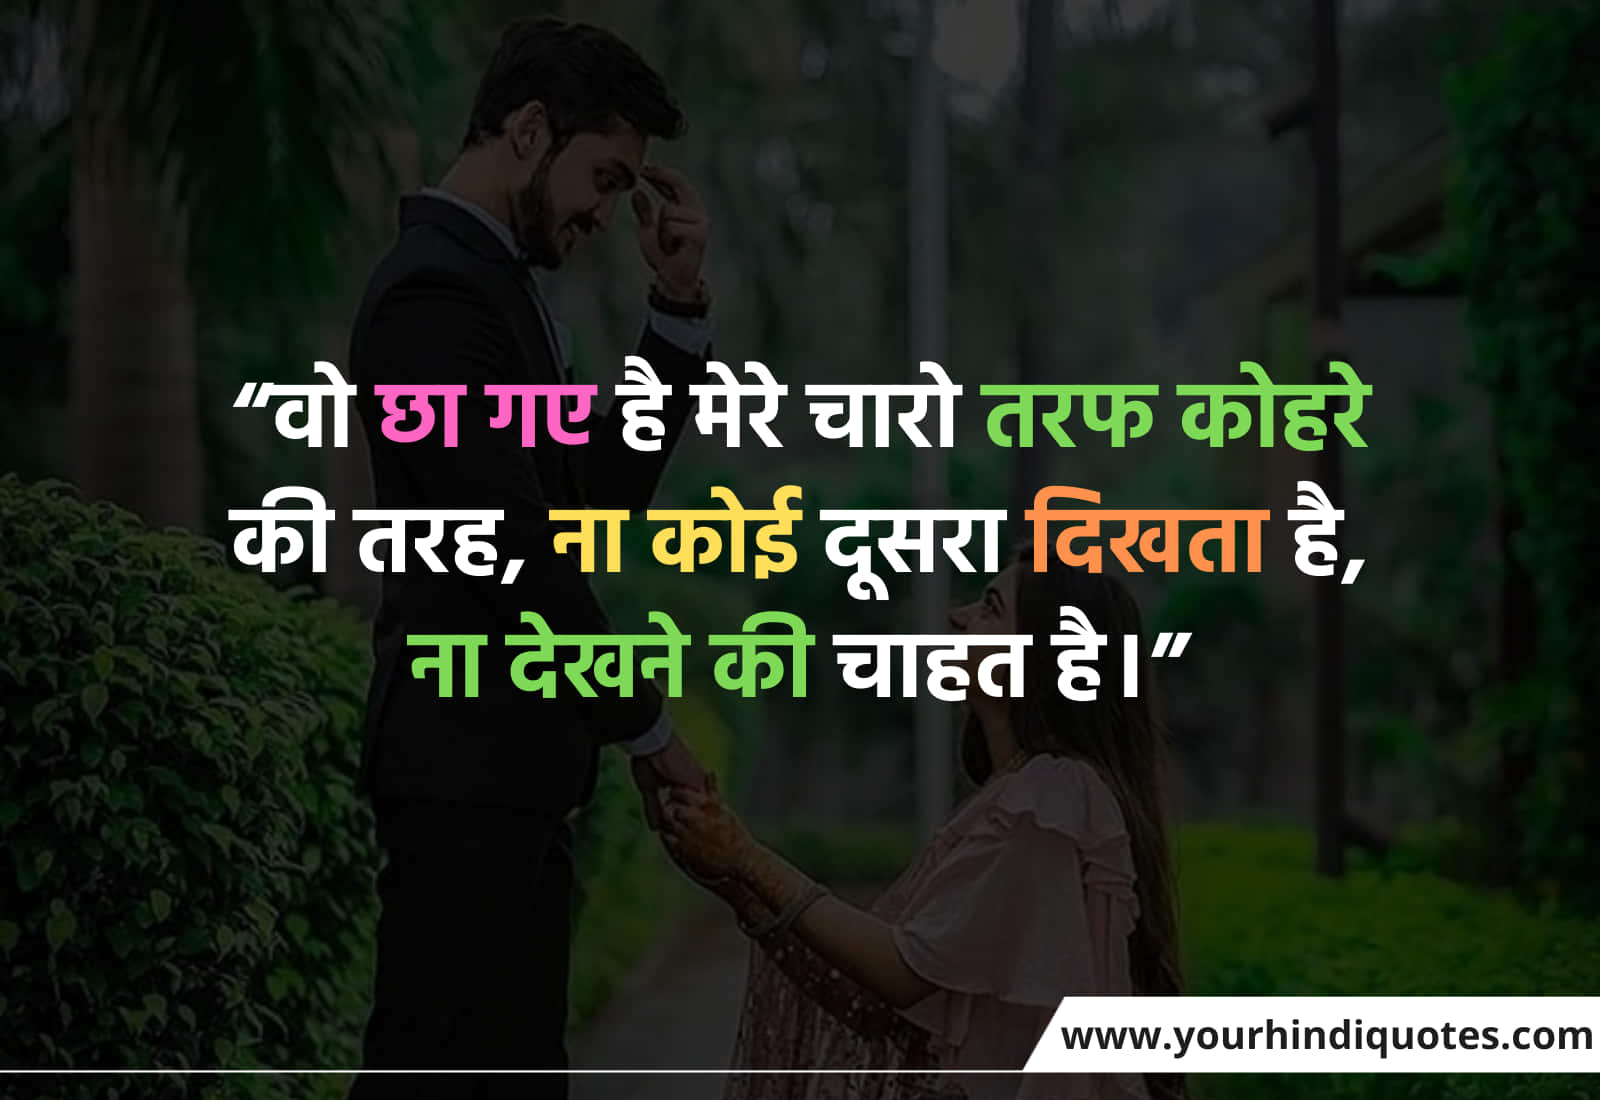 Hindi Love Quotes For Bf